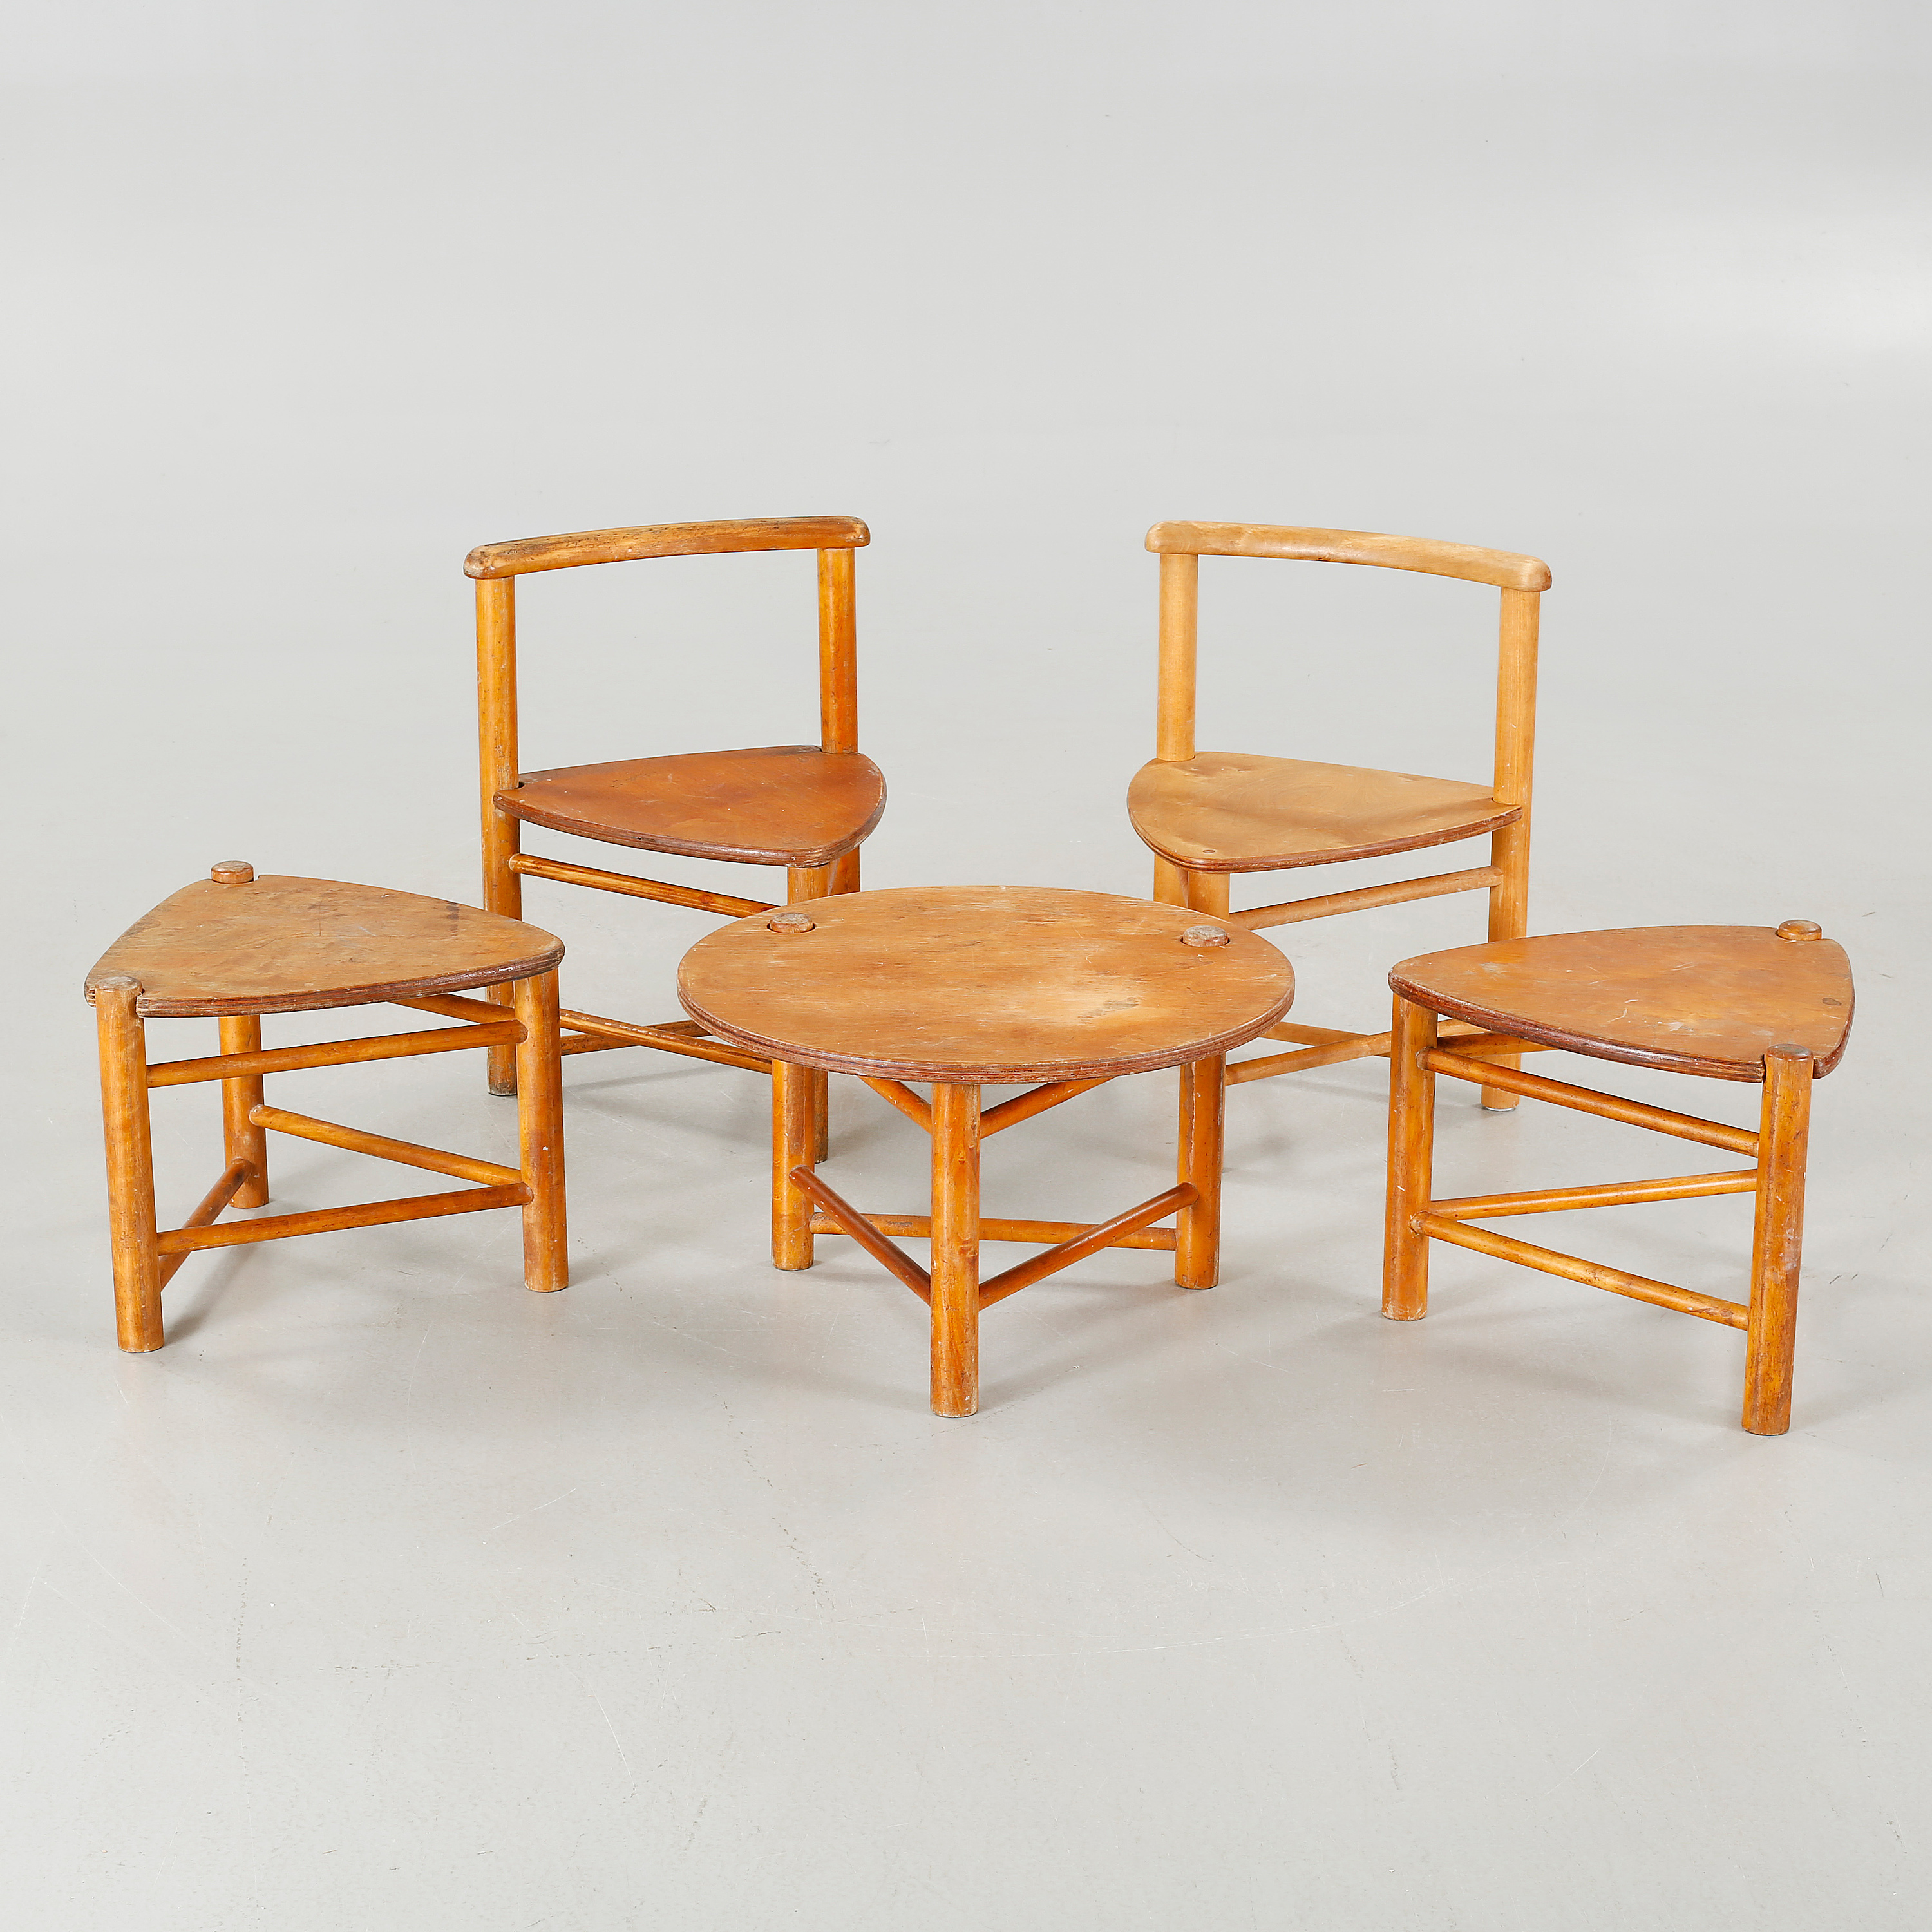 Funitures: Five Children Furnitures, Designed By Elis Borg For Firm